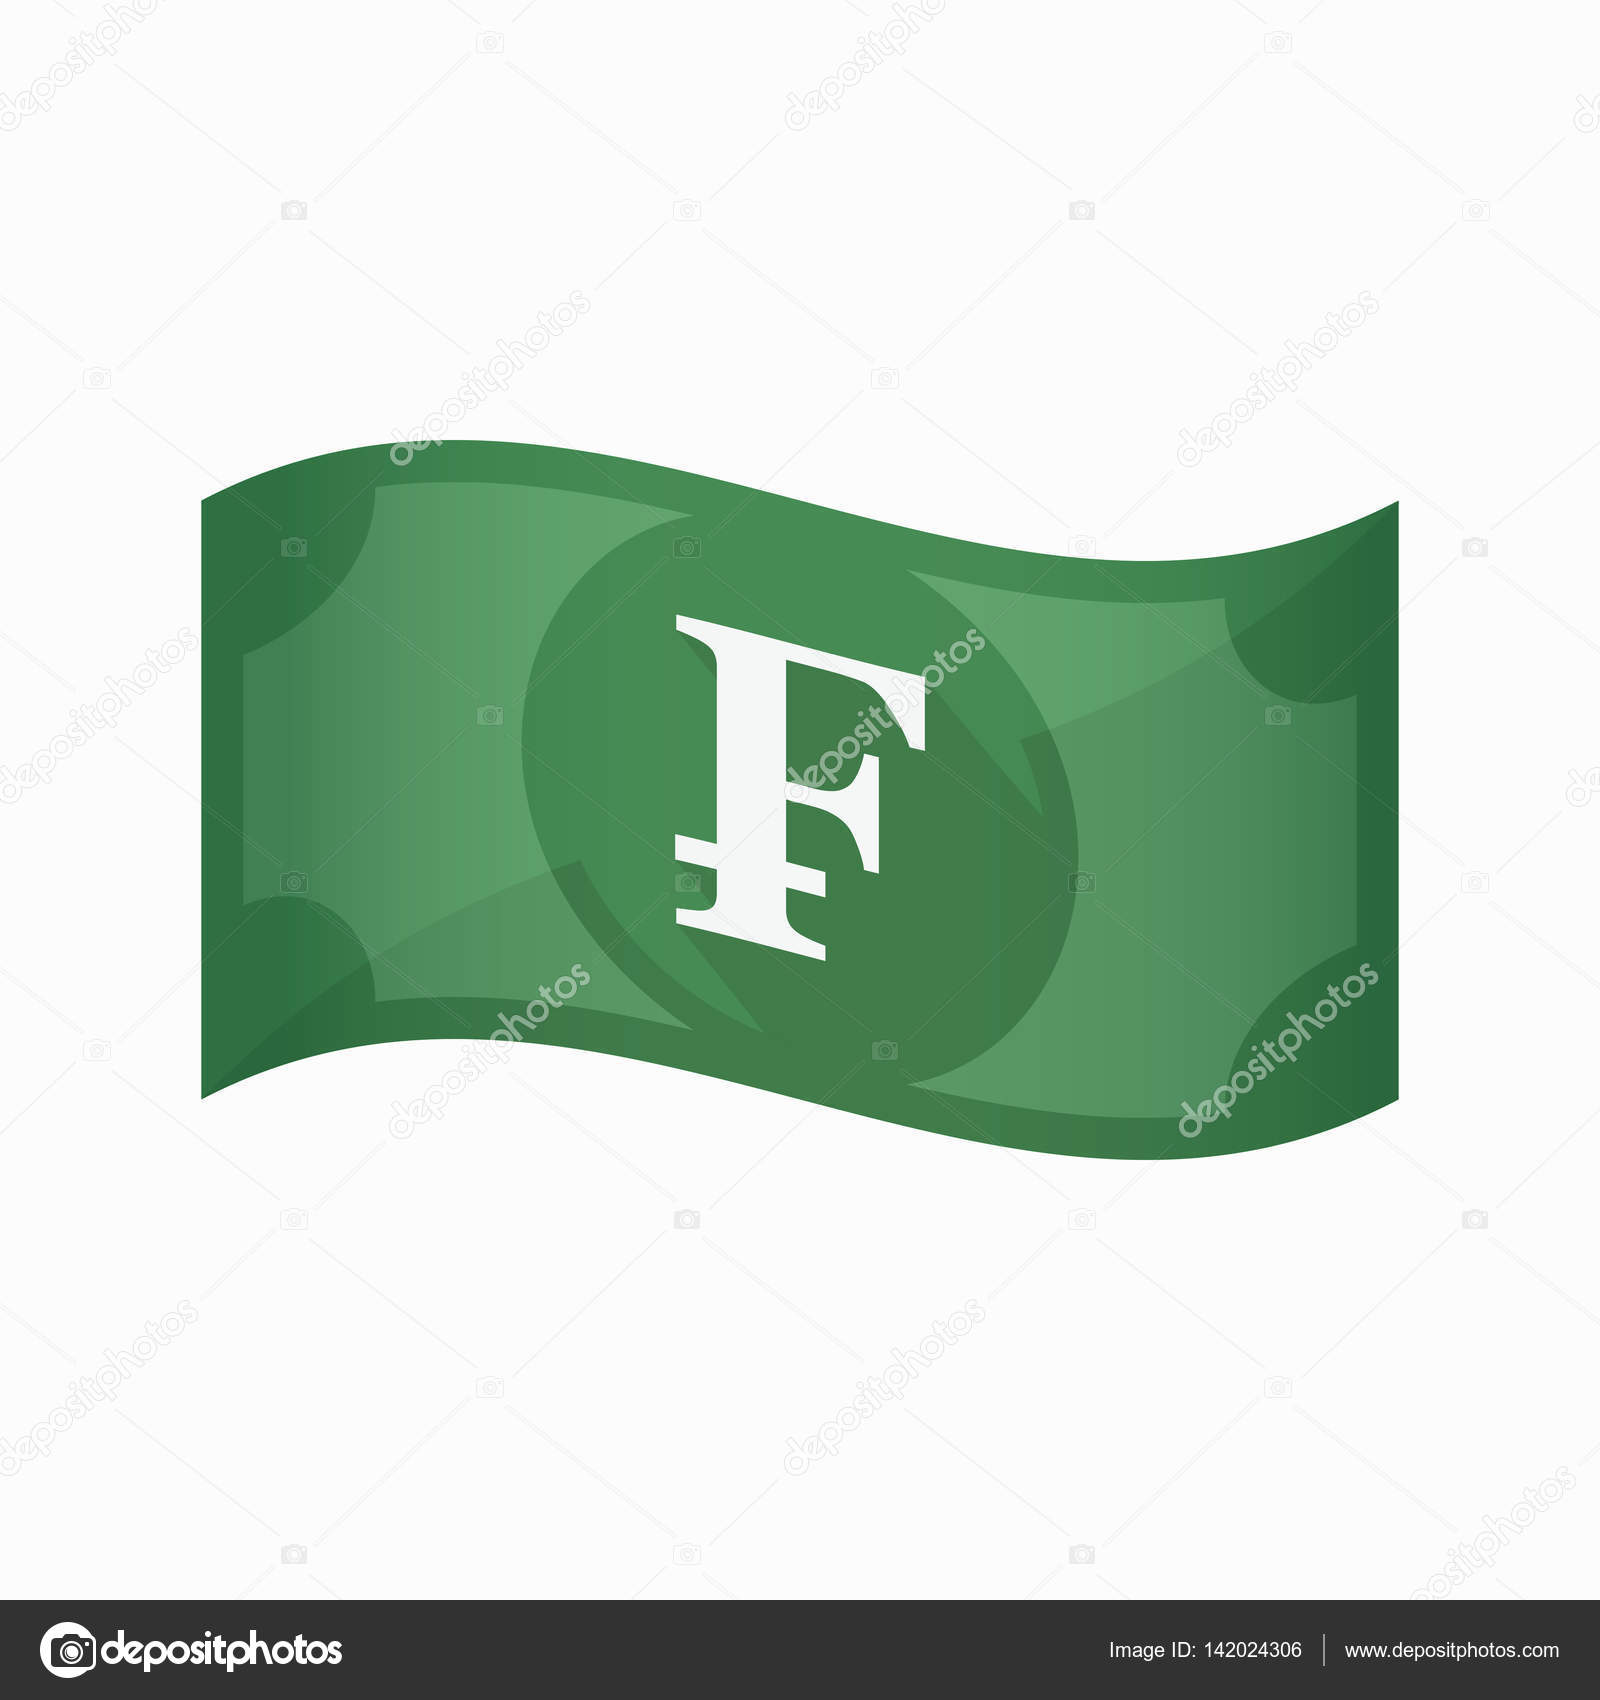 Isolated bank note with a swiss franc sign stock vector jpgon isolated bank note with a swiss franc sign stock vector buycottarizona Images